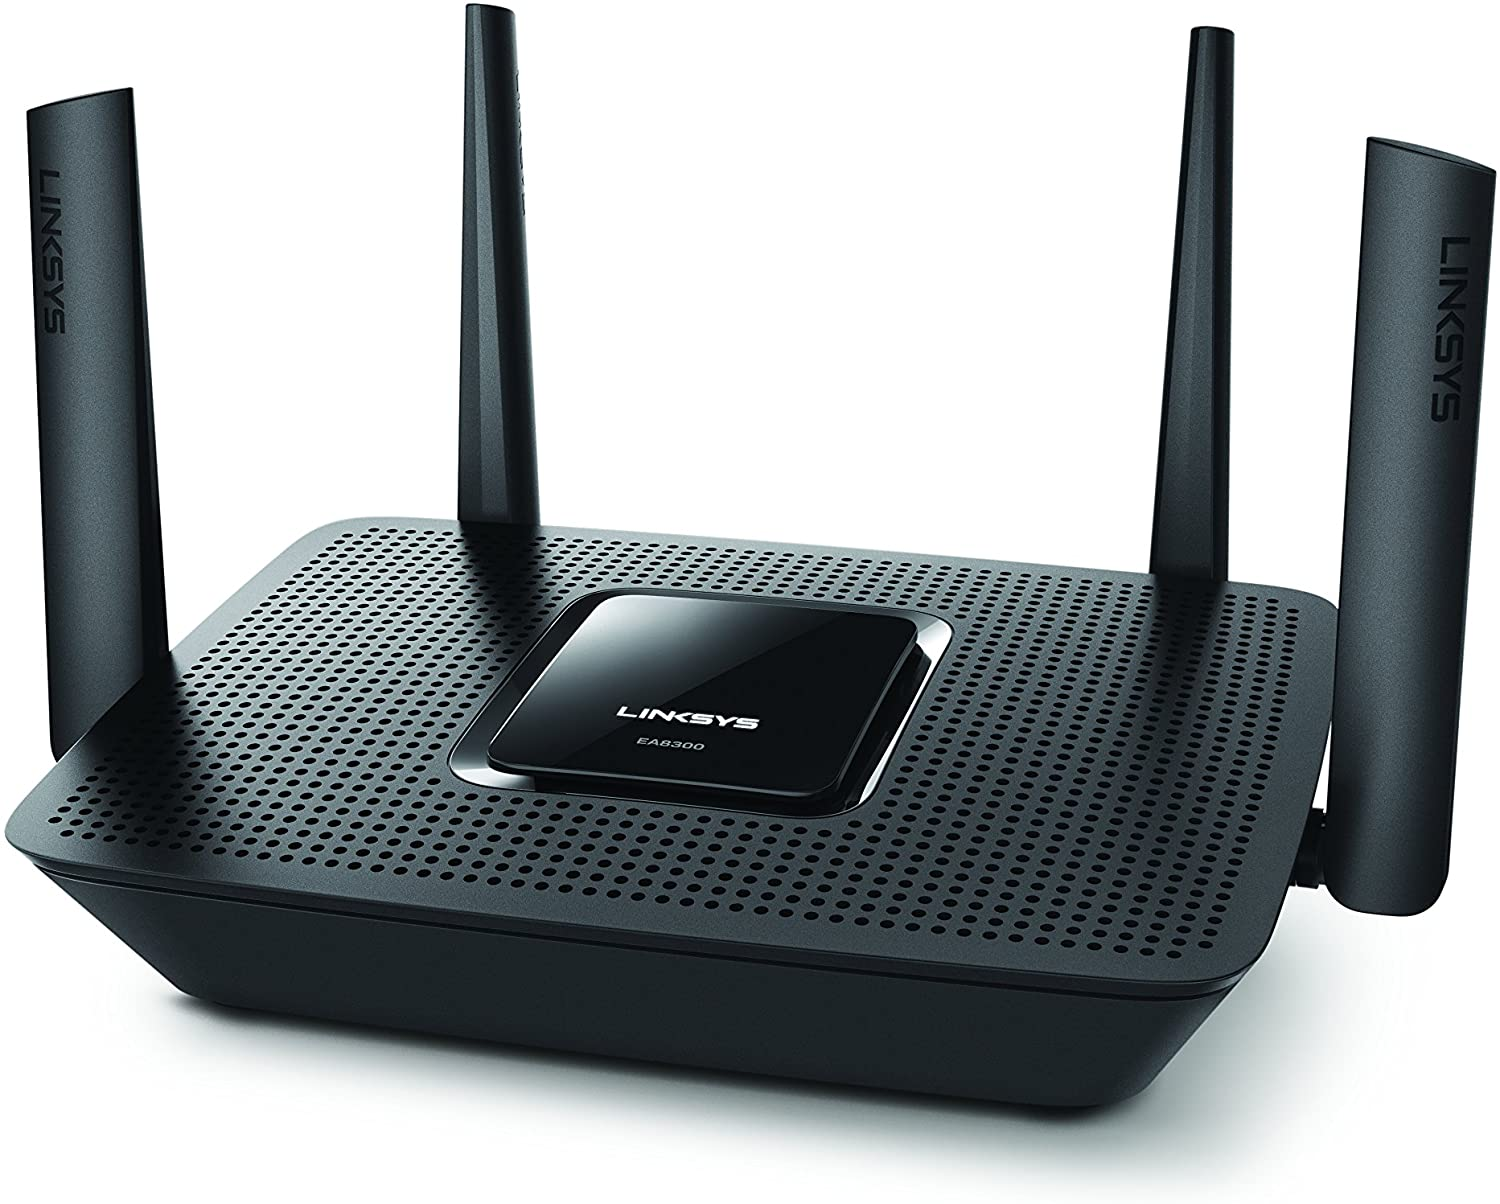 Best Router 2020.The 20 Best Wireless Routers Of 2020 2021 Buying Guide